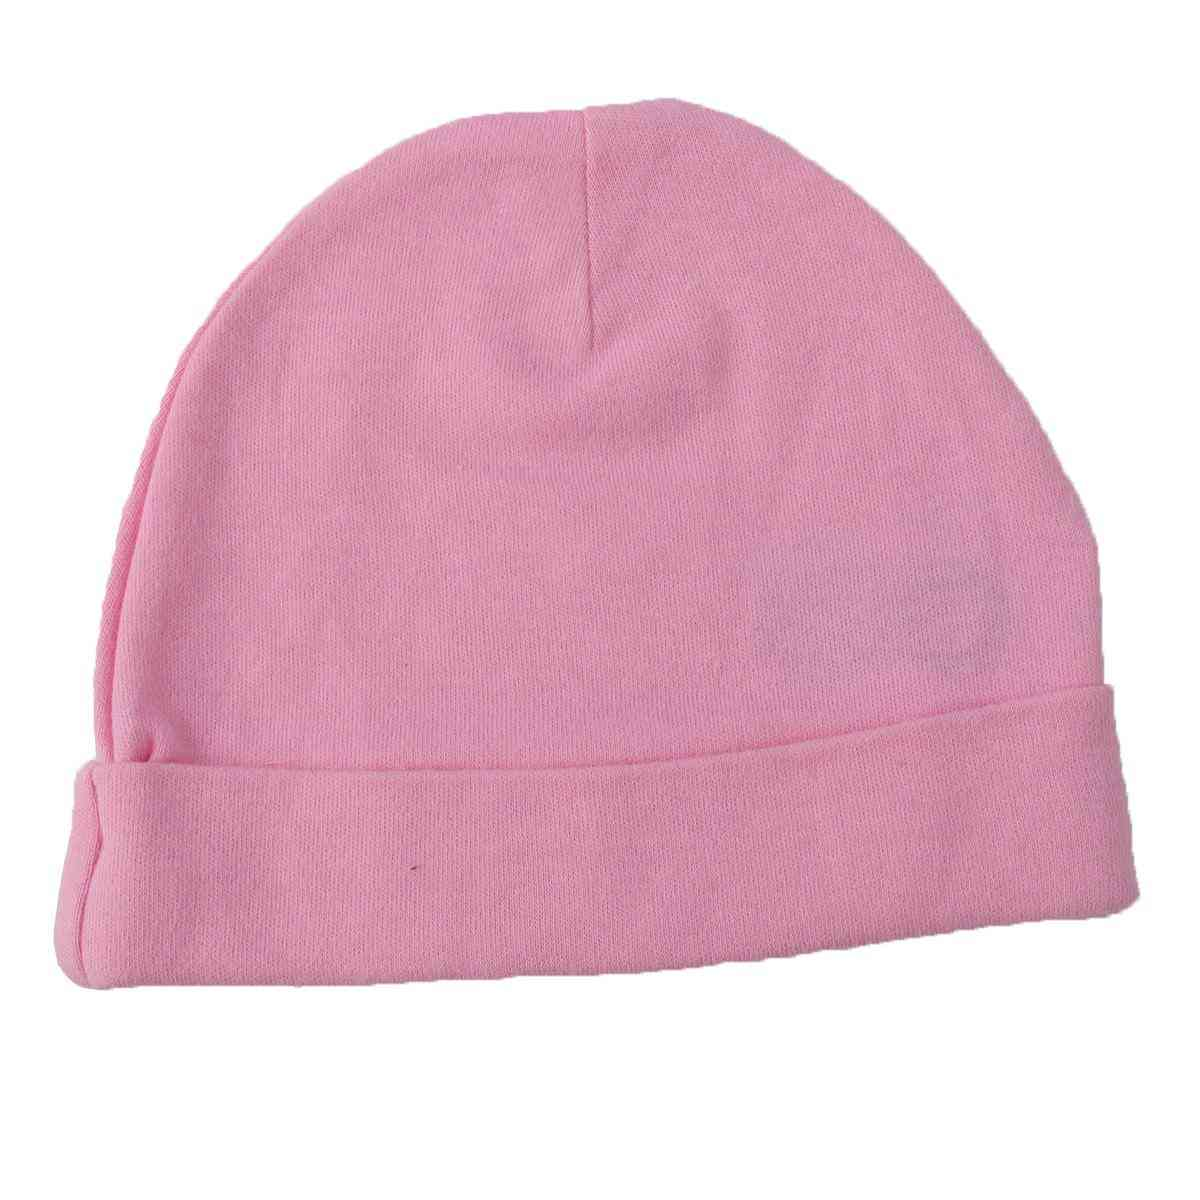 Asaan Bachpan Baby Cap for 0 - 6 Month Baby  Pink